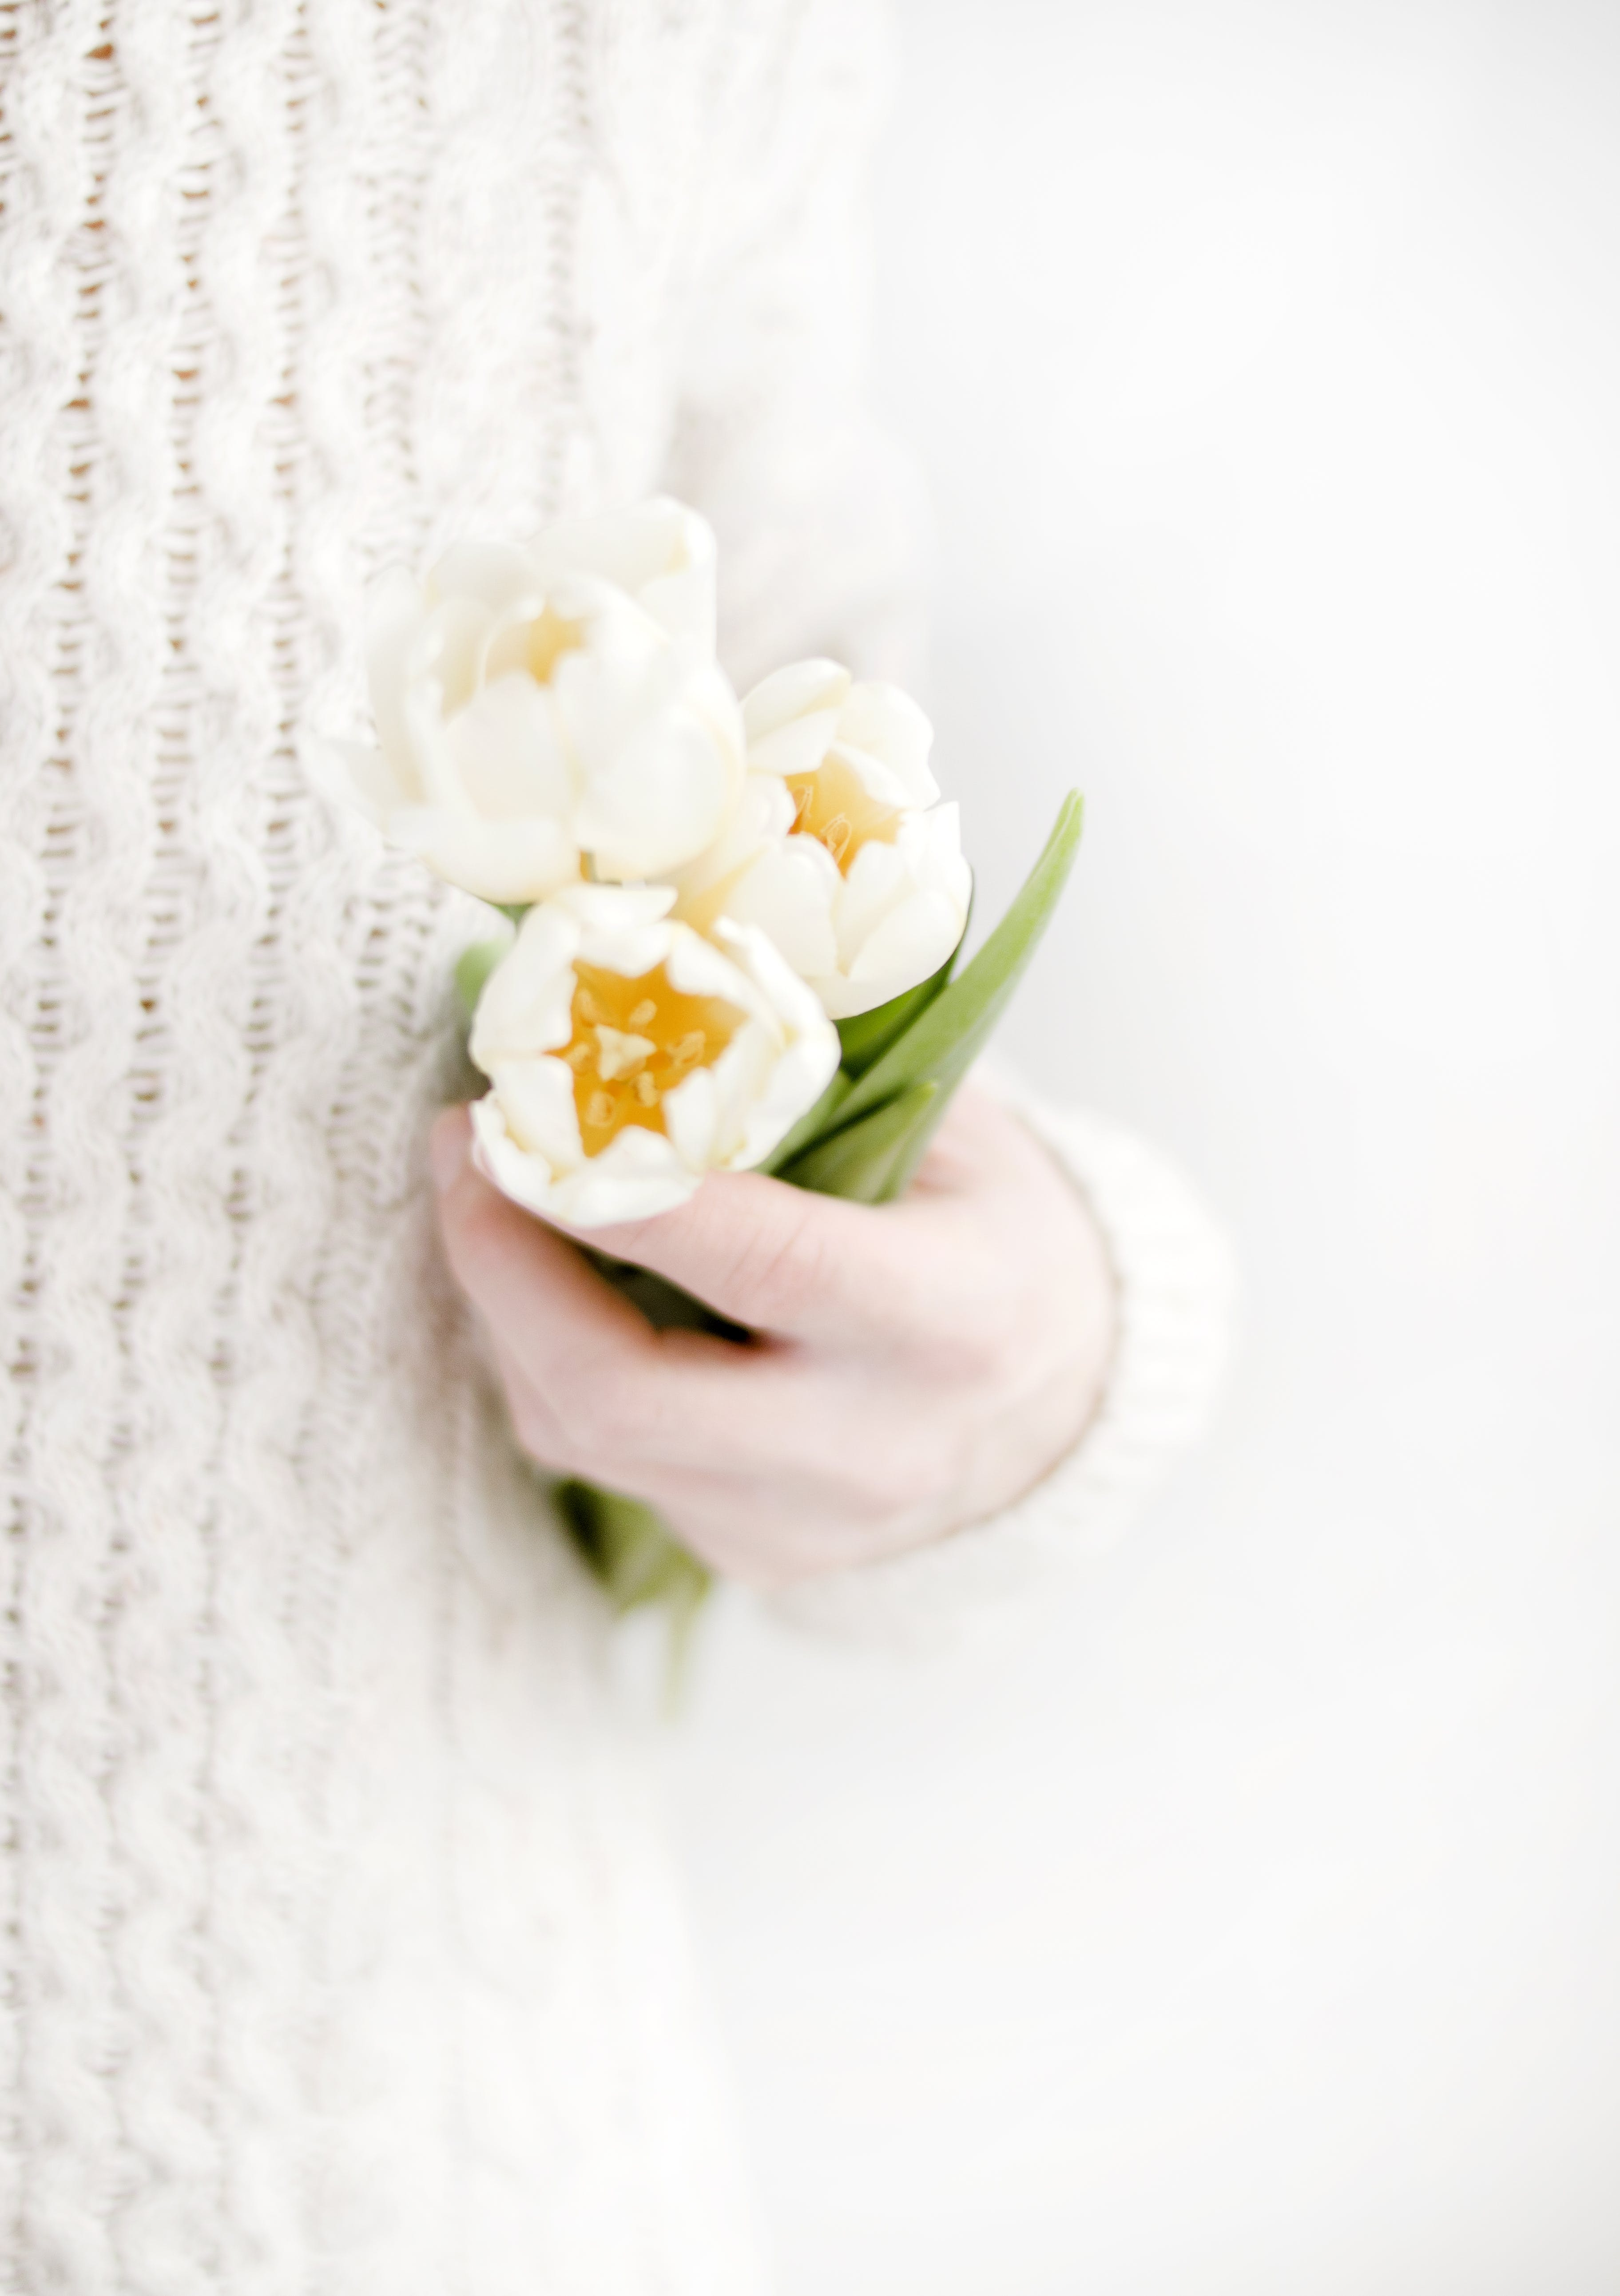 Person Holding White Petal Flowers